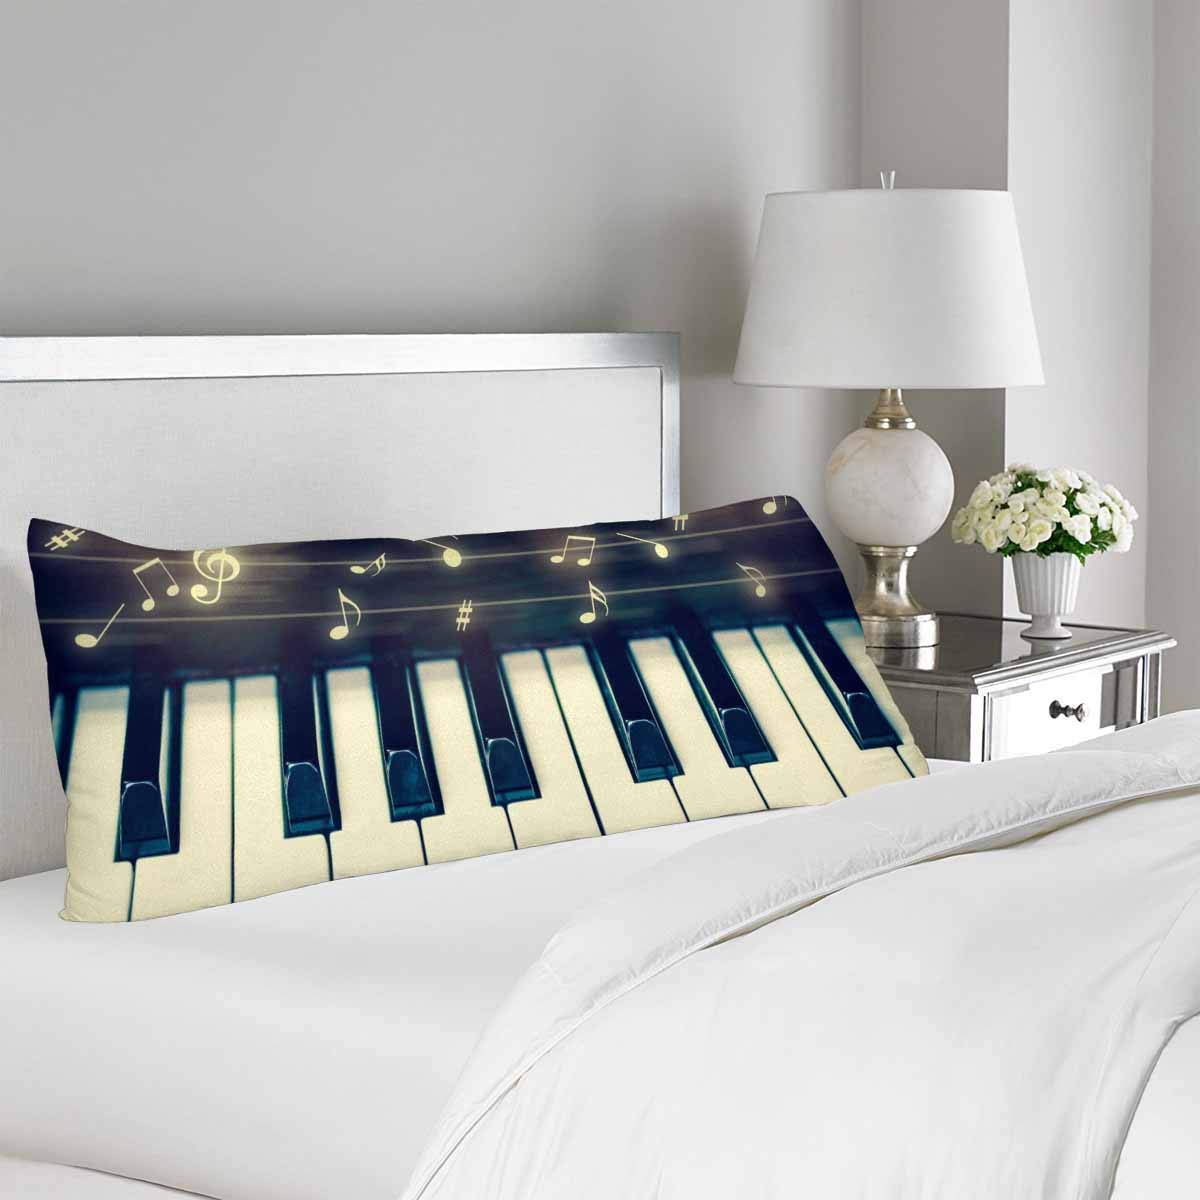 GCKG Keyboard of Piano with Music Notes Musical Instrument Pillow Covers Pillowcase 20x60 inches, Body Pillow Case Protector - image 1 of 2